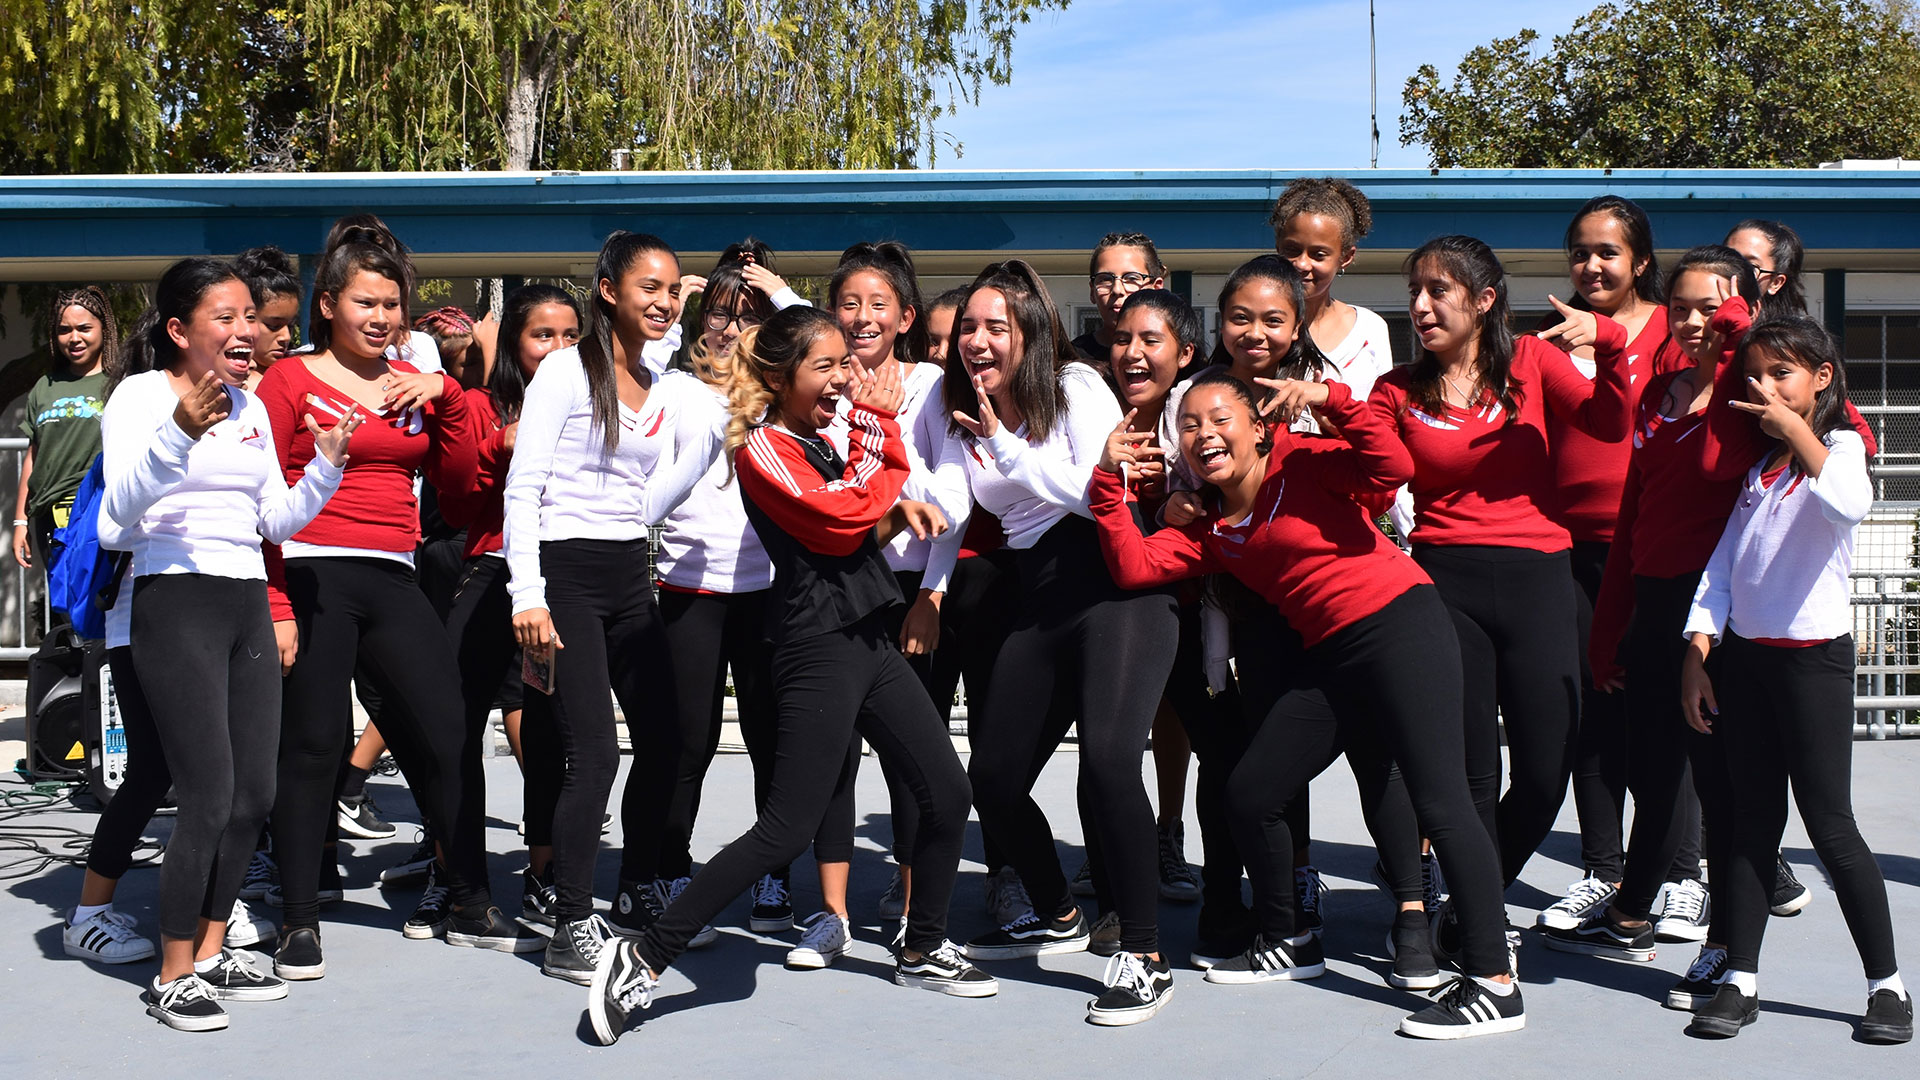 middle school students posing together outside at dance event